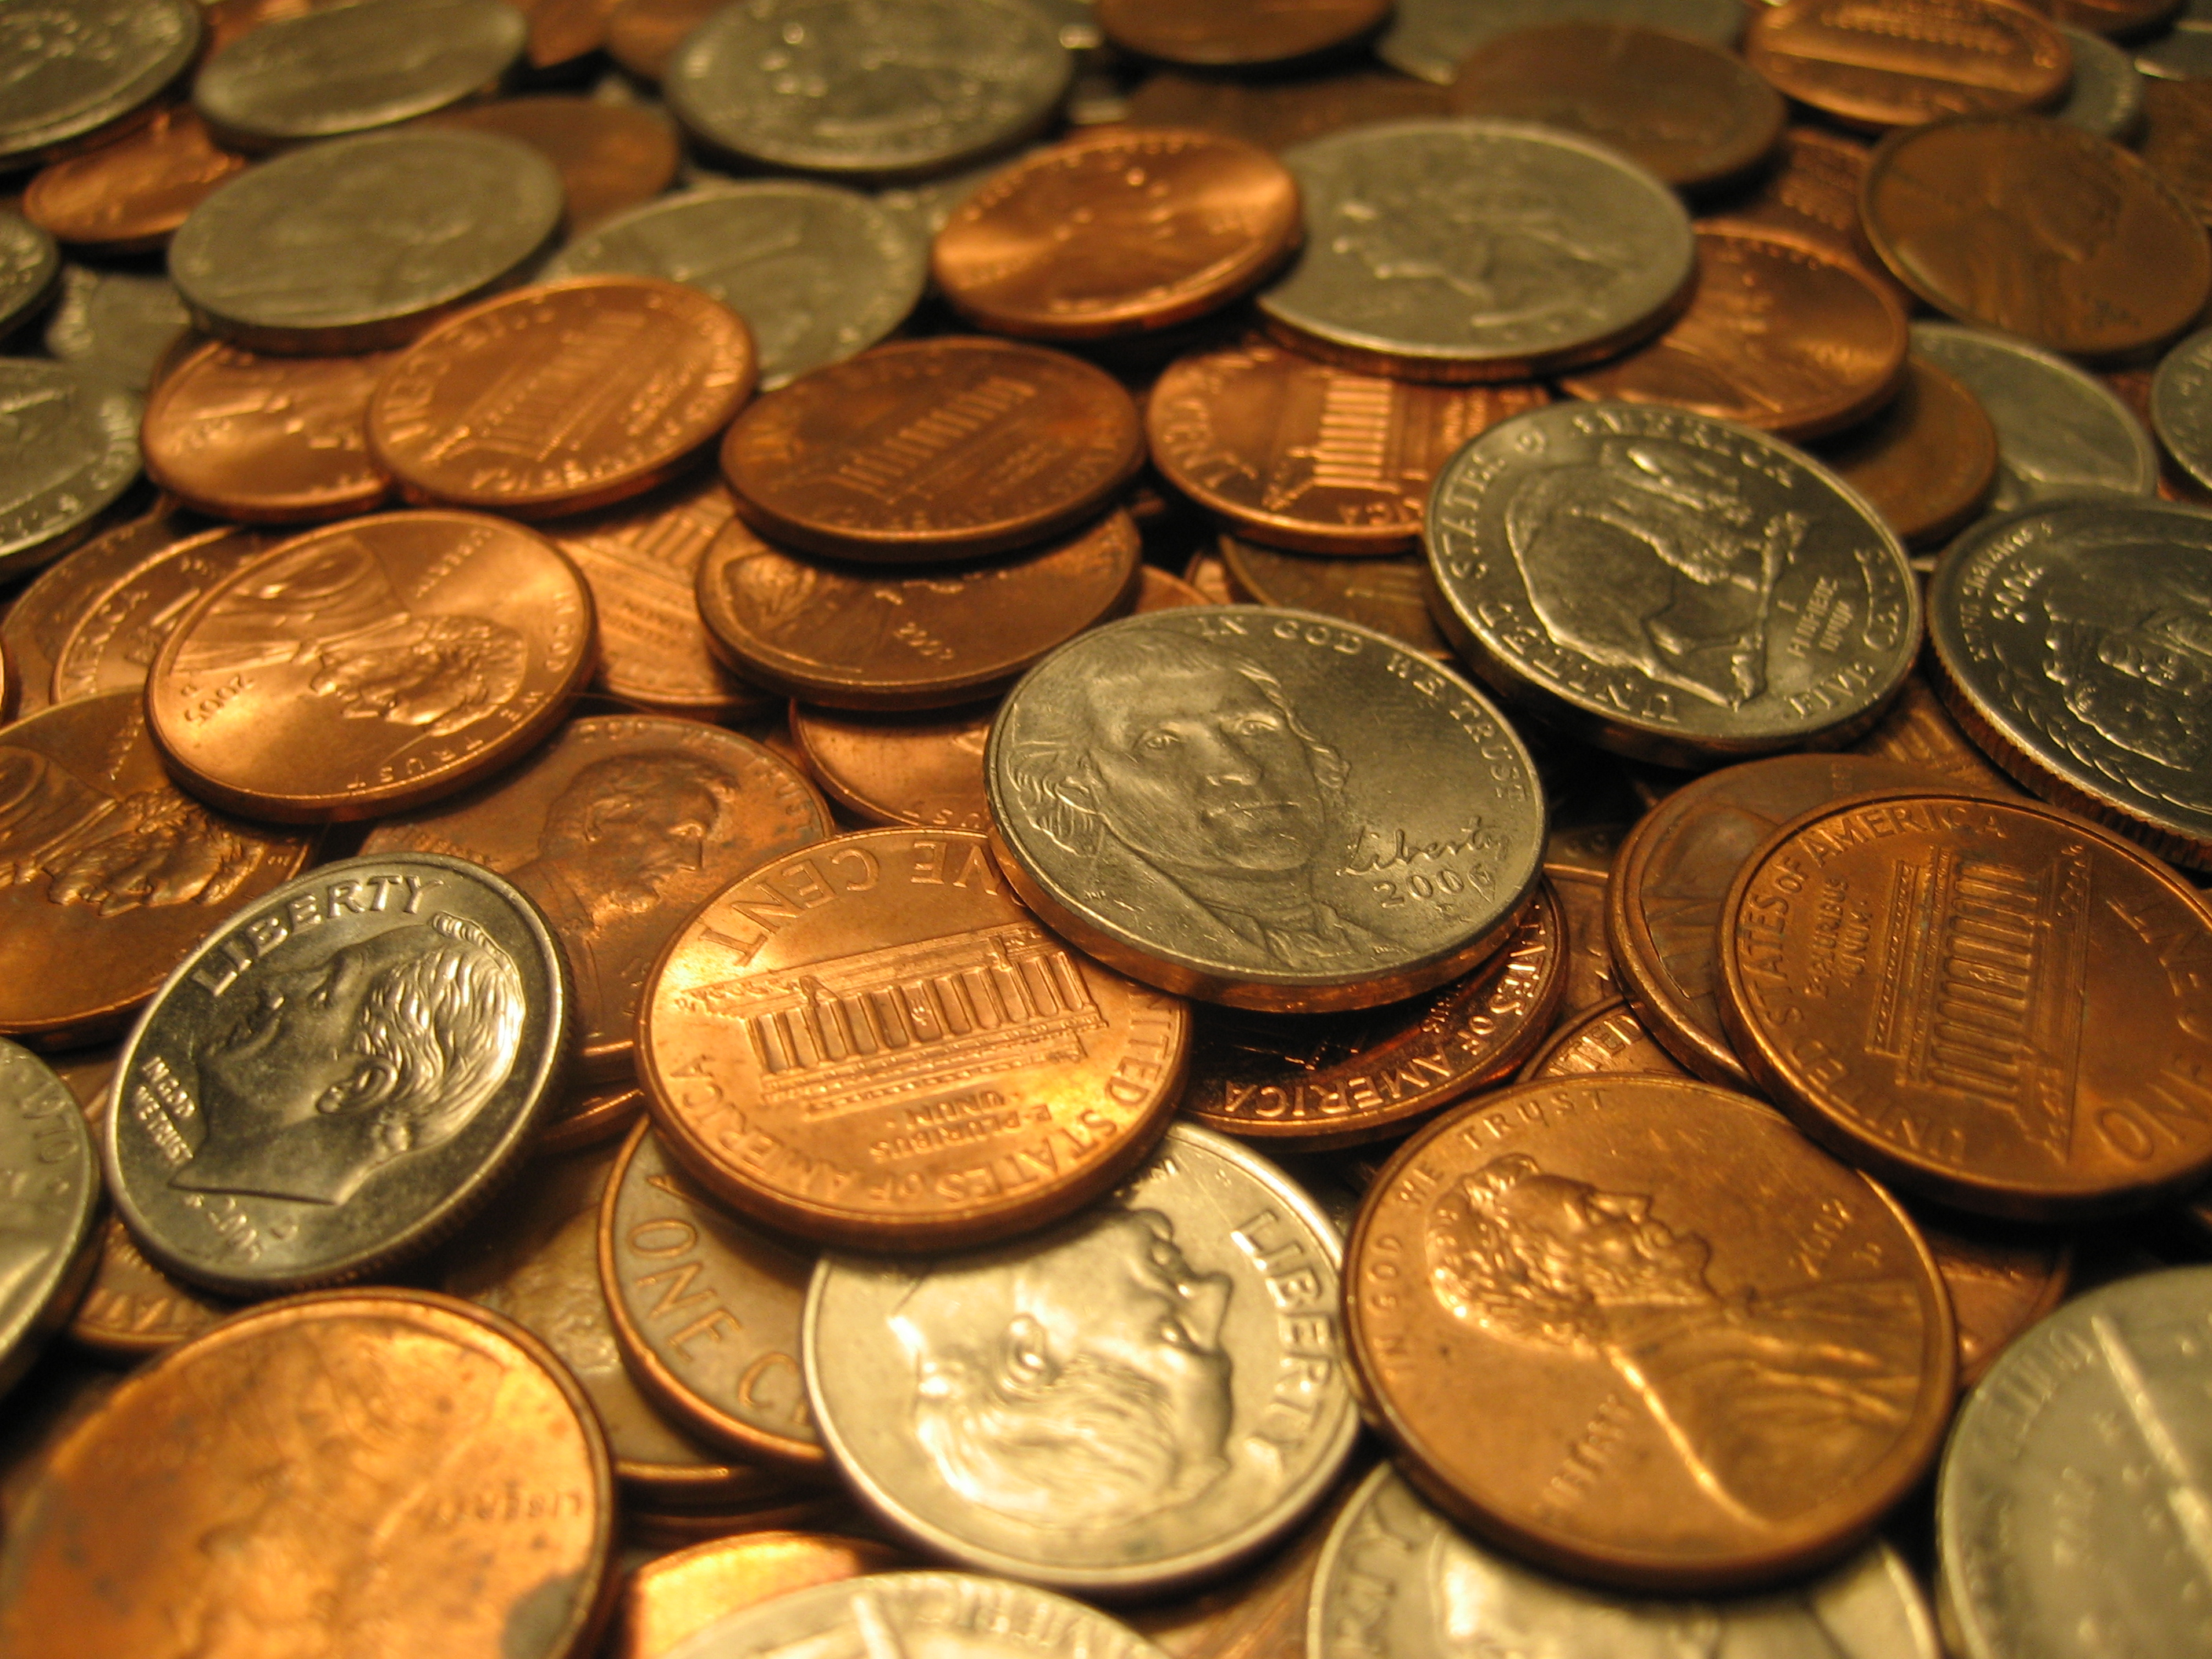 Being more than just a penny